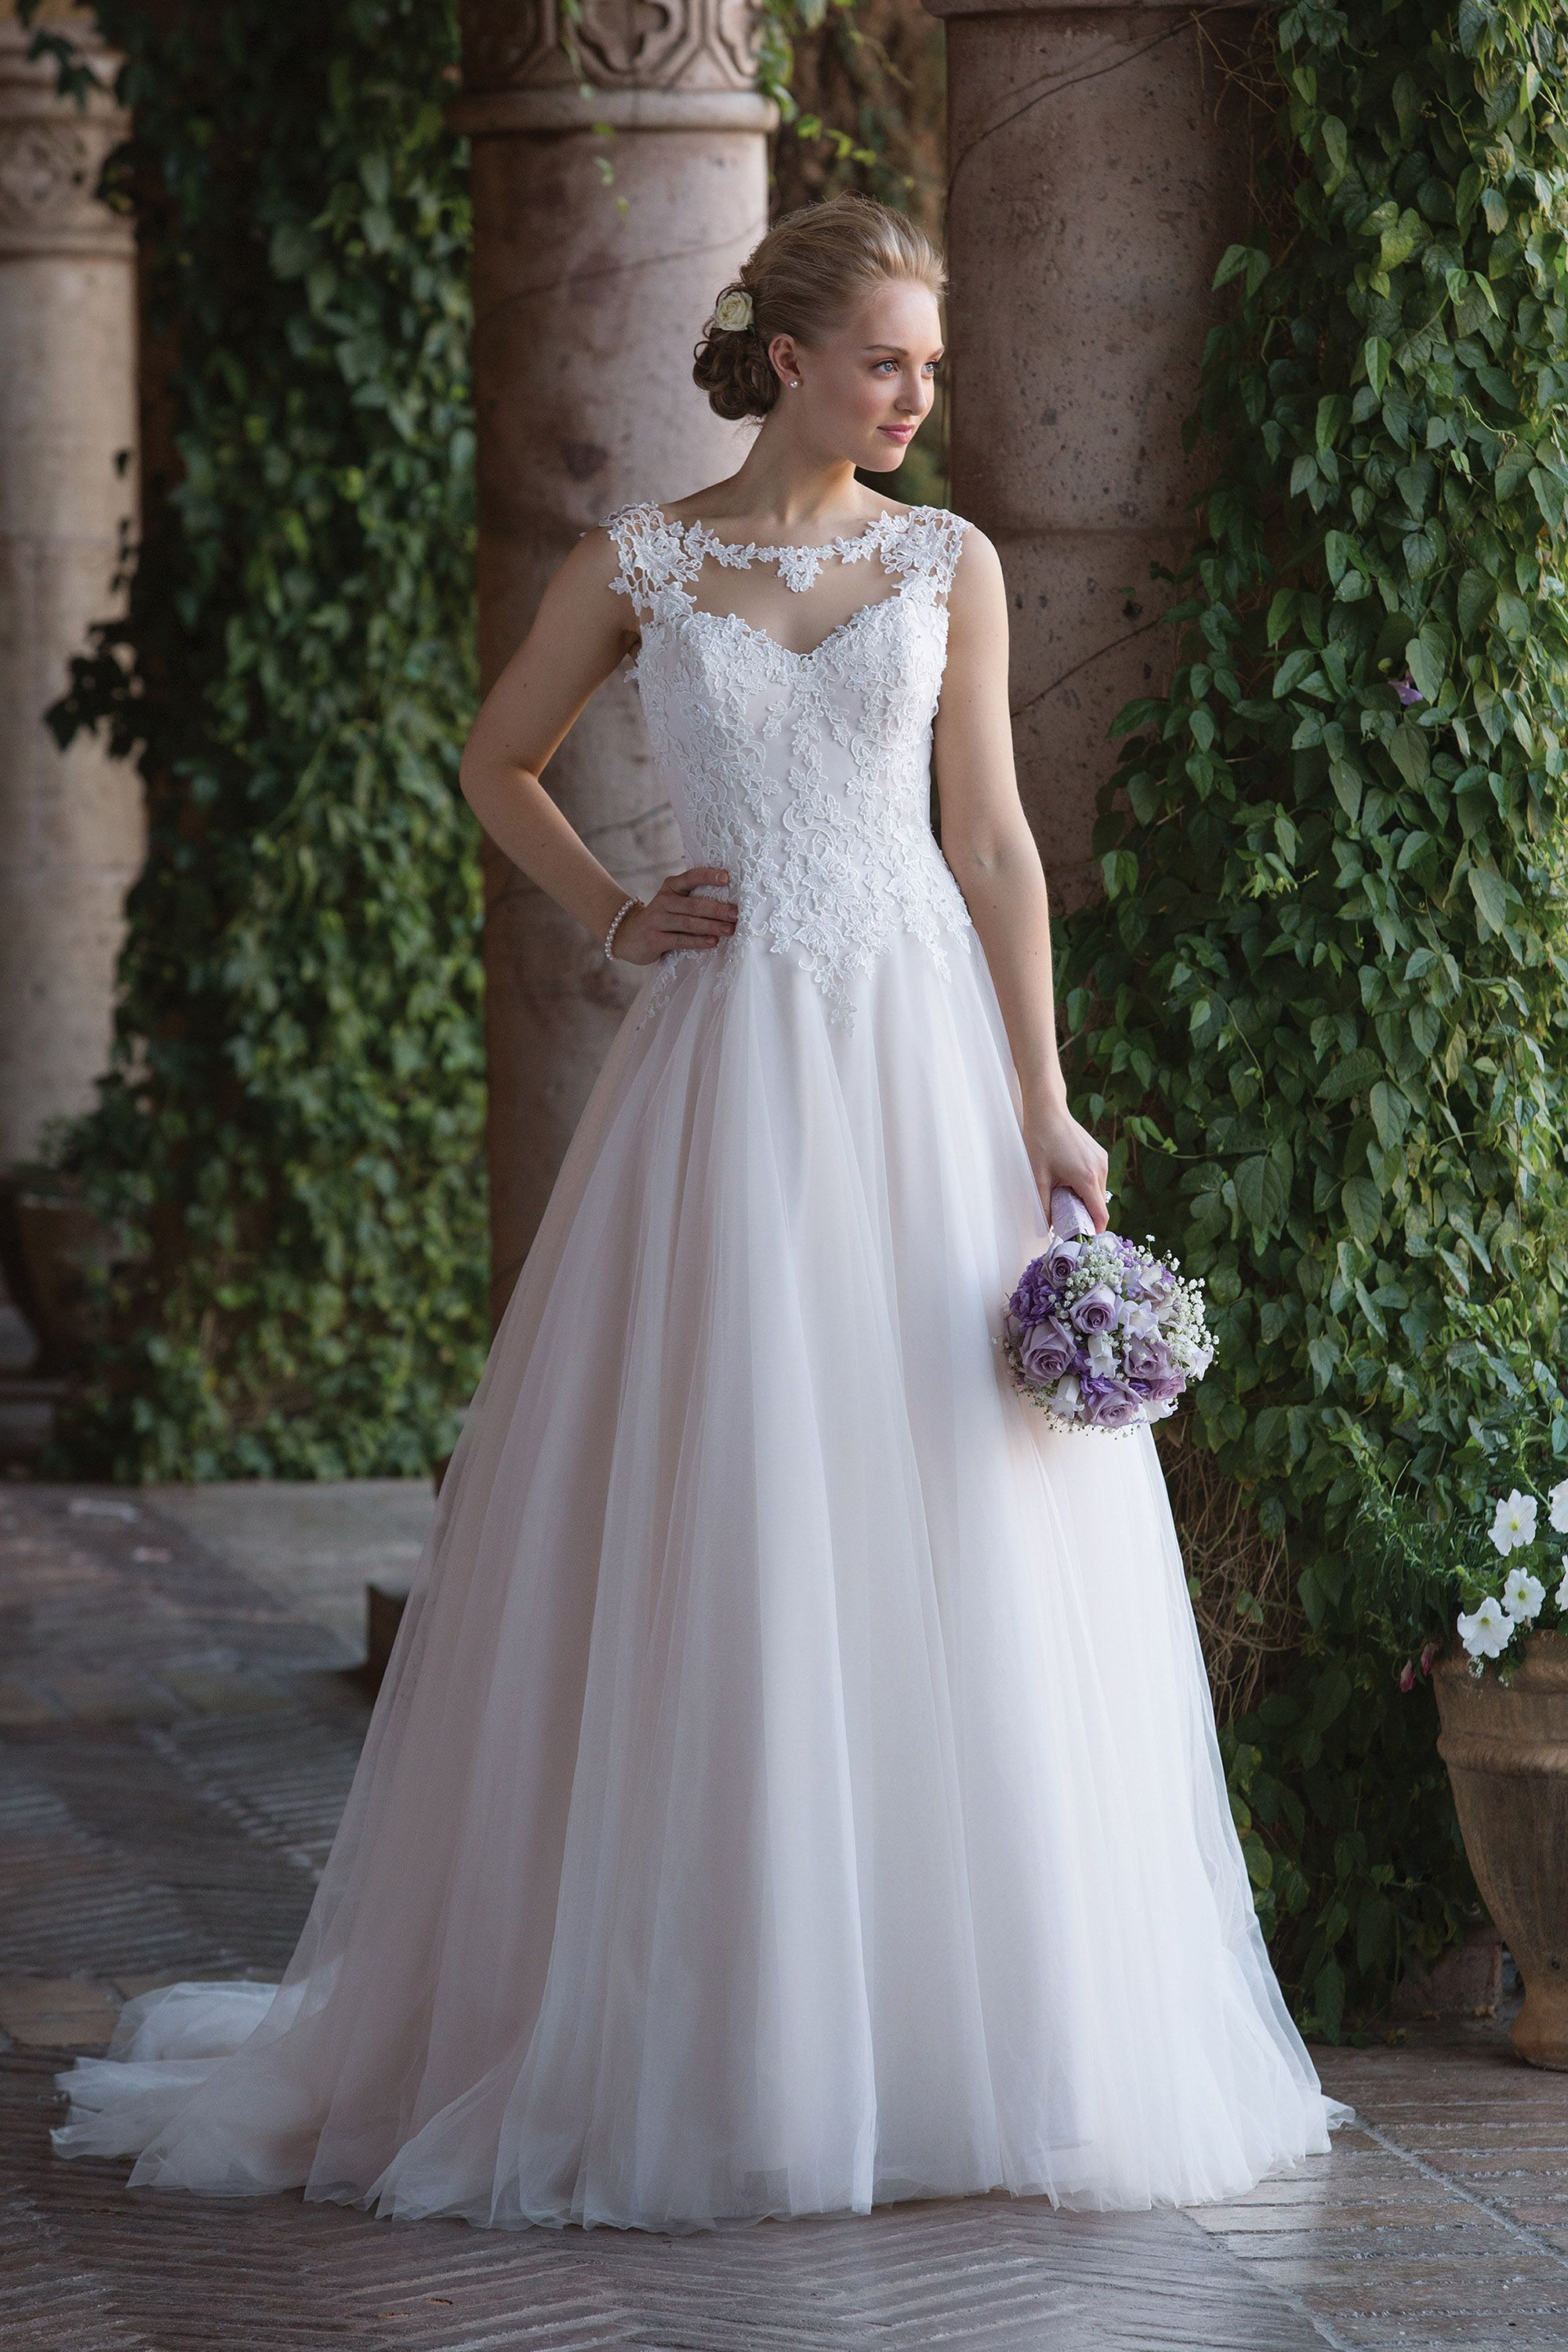 Tulle Ball Gown with Basque Waist STYLE Justin Alexander